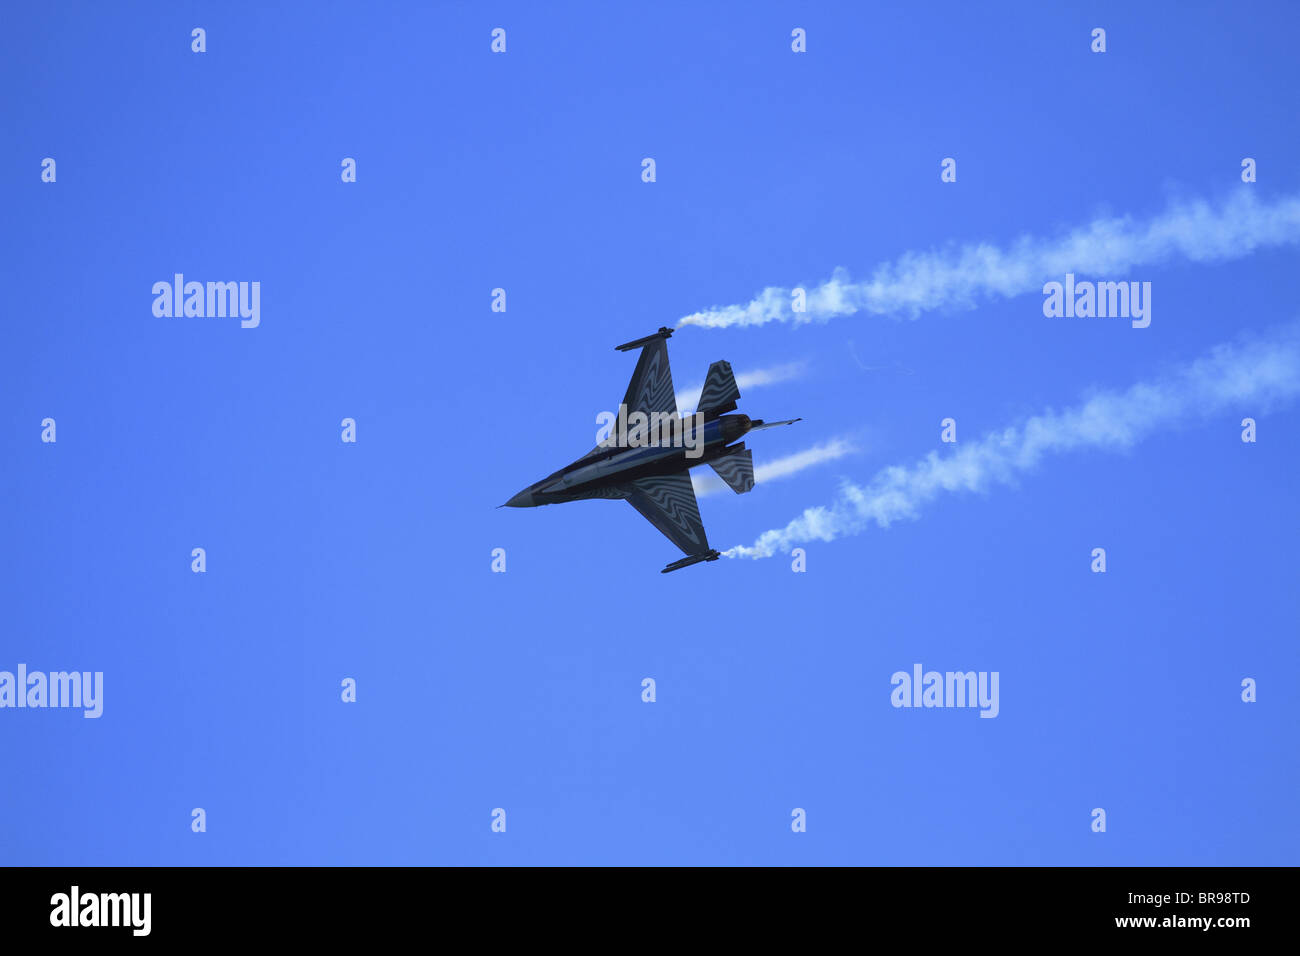 Un belga Air Force F16 (Lockheed Martin F-16 Fighting Falcon) Fighter Jet esegue a Eastbourne Air Show, East Sussex, Inghilterra Foto Stock